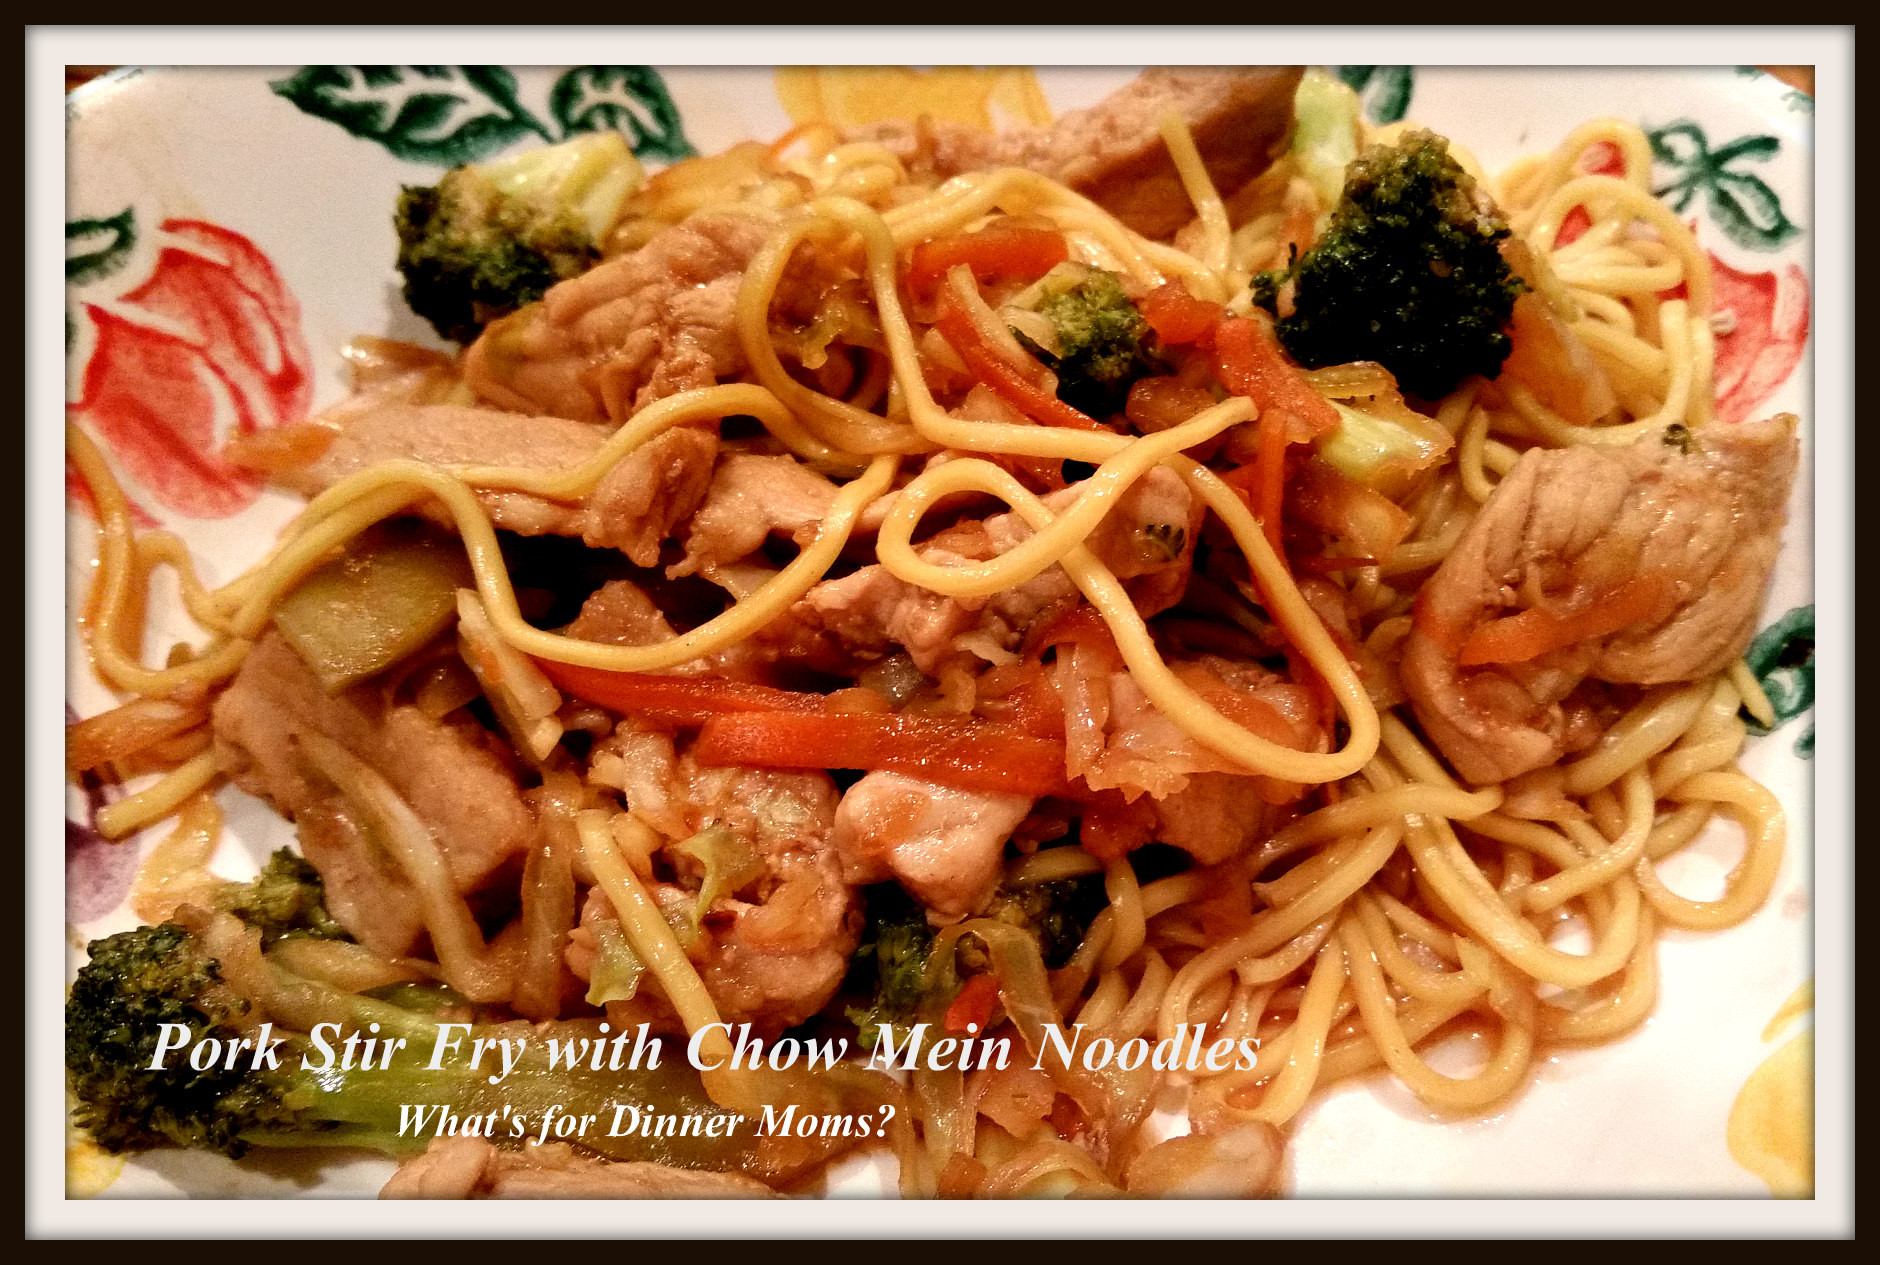 Chow Mein Stir Fry Noodles  Pork Stir Fry with Chow Mein Noodles – What s for Dinner Moms